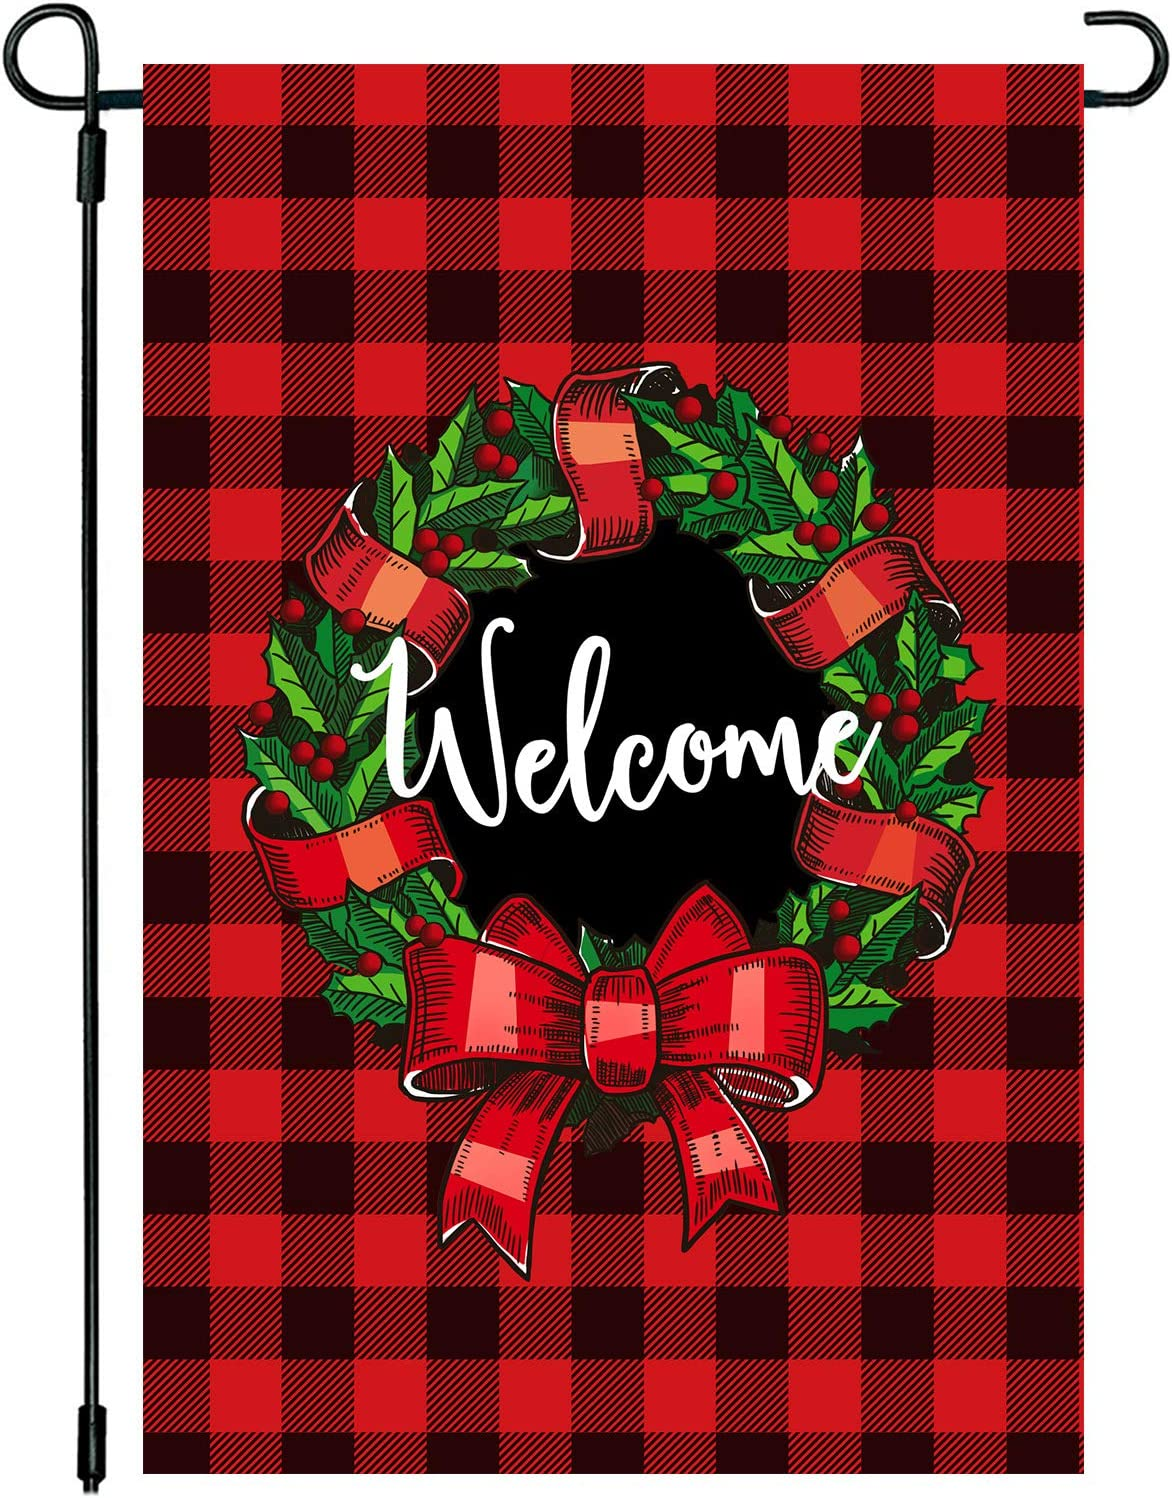 CAVLA Wreath Welcome Christmas Garden Flag 12 x 18 Inch Double Sided Buffalo Check Plaid Rustic Farmhouse Burlap Flag Christmas Winter Holiday Farmhouse Yard Outdoor Decoration